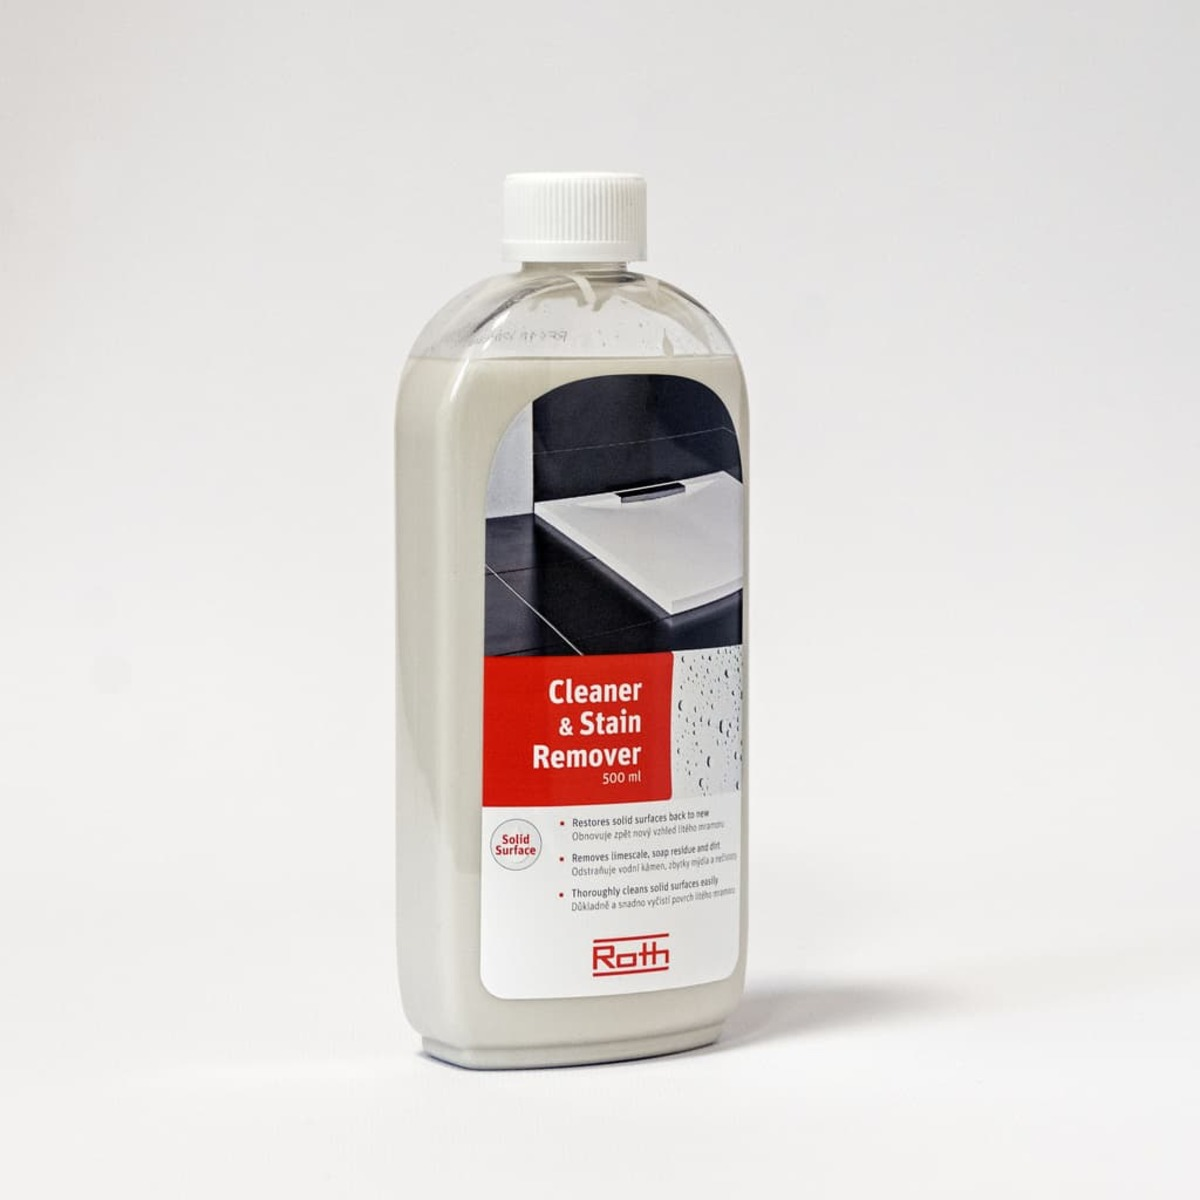 Roth Solid Surface Cleaner 5139820 - Roth SOLID SURFACE CLEANER 500 ml